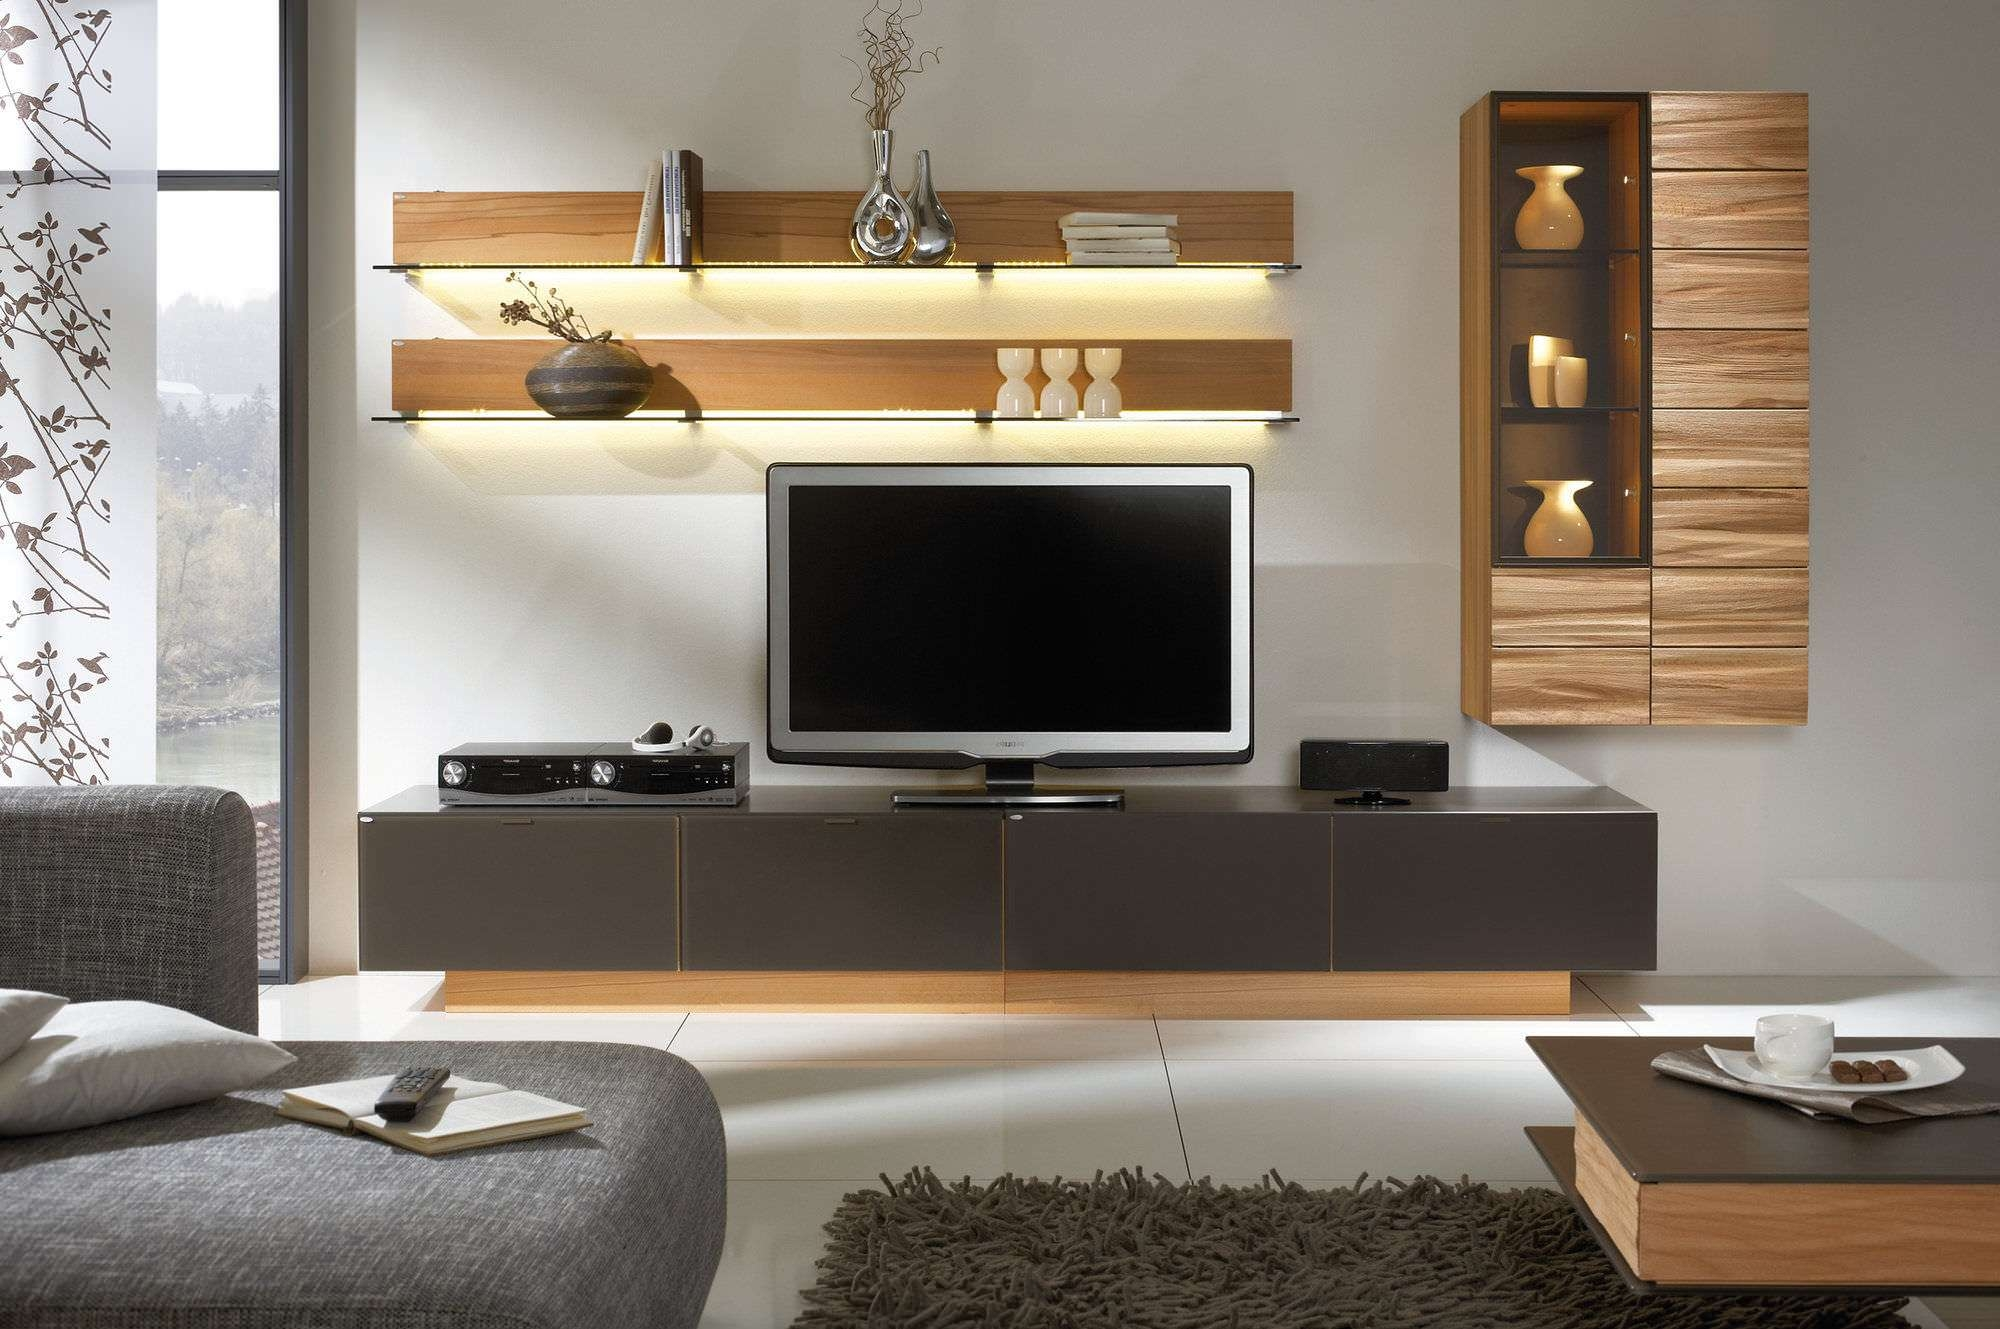 Ideas About Contemporary Tv Units Panel Trends Including Built In Within Modern Design Tv Cabinets (View 7 of 20)